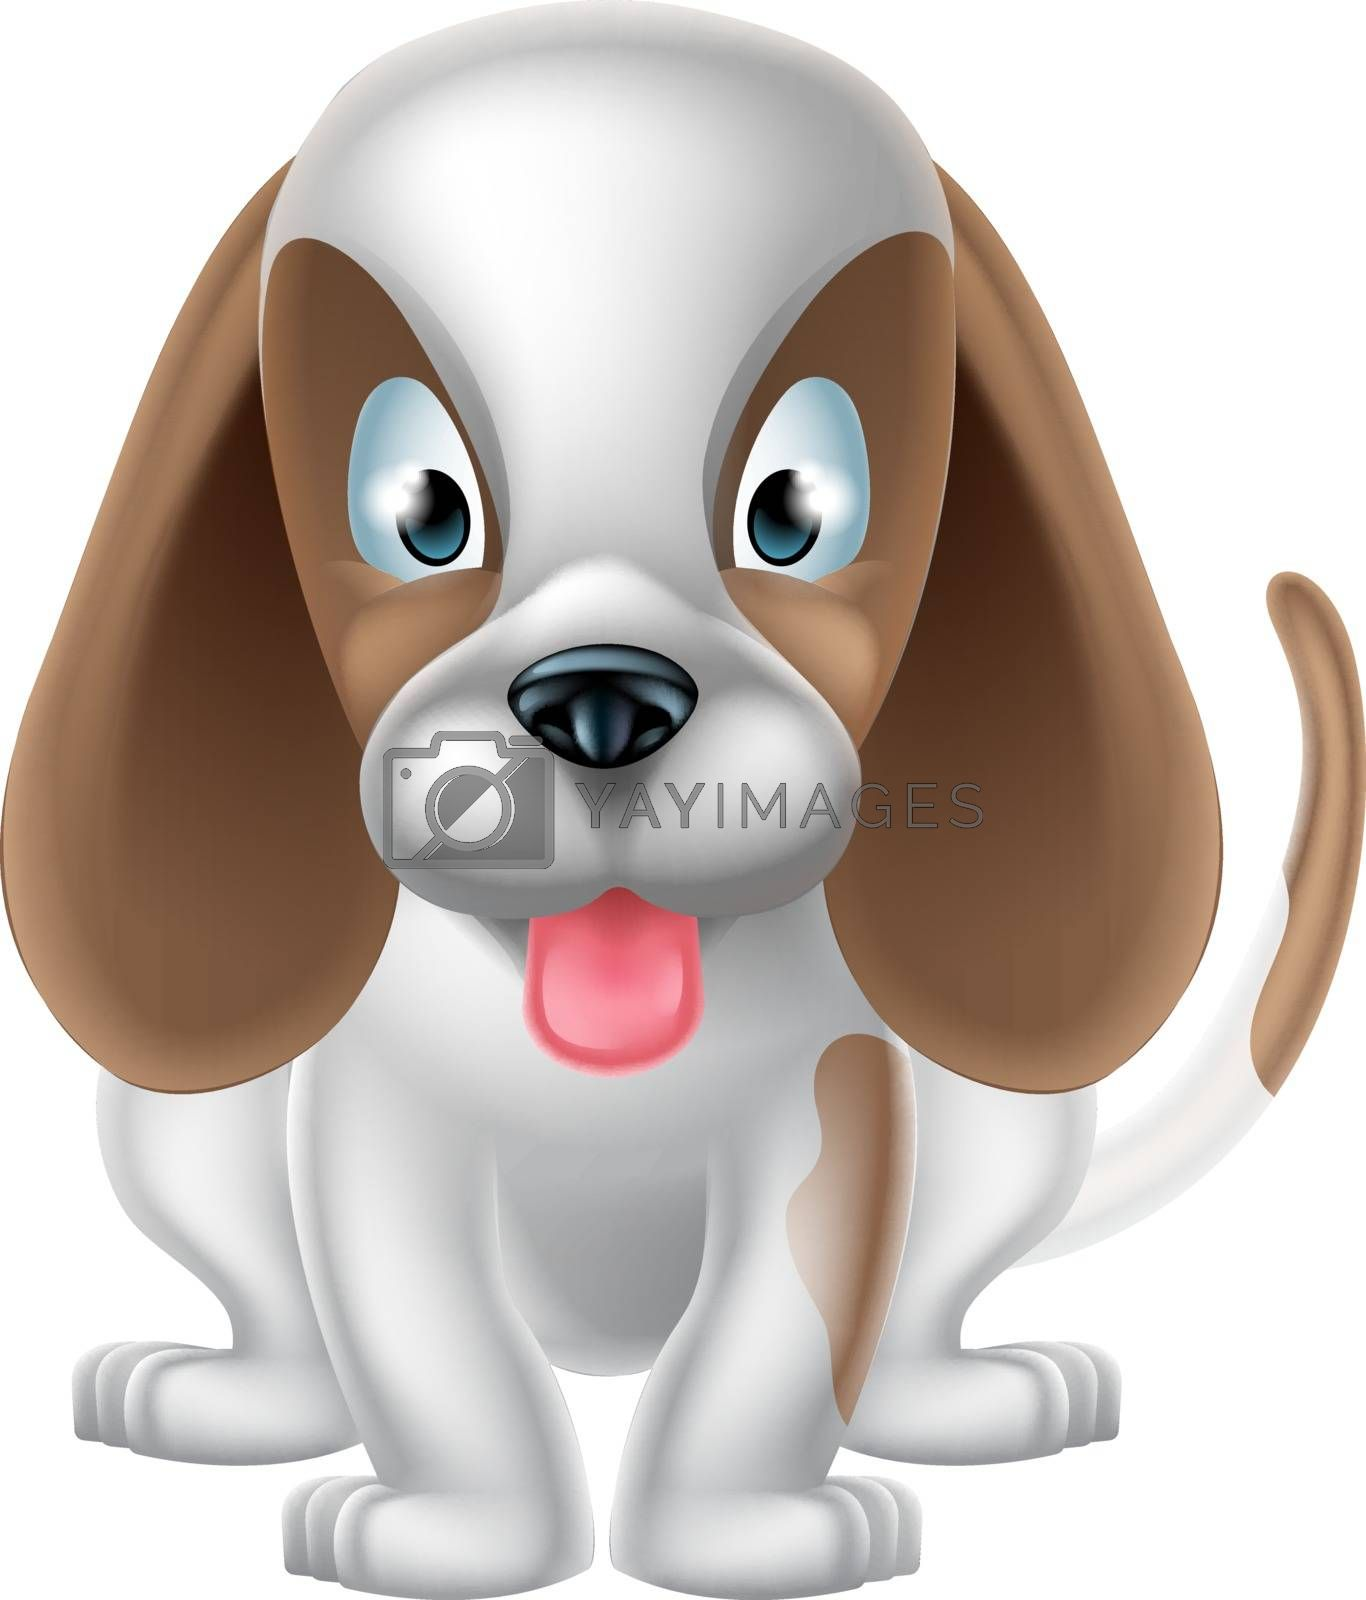 An illustration of a cute cartoon puppy dog